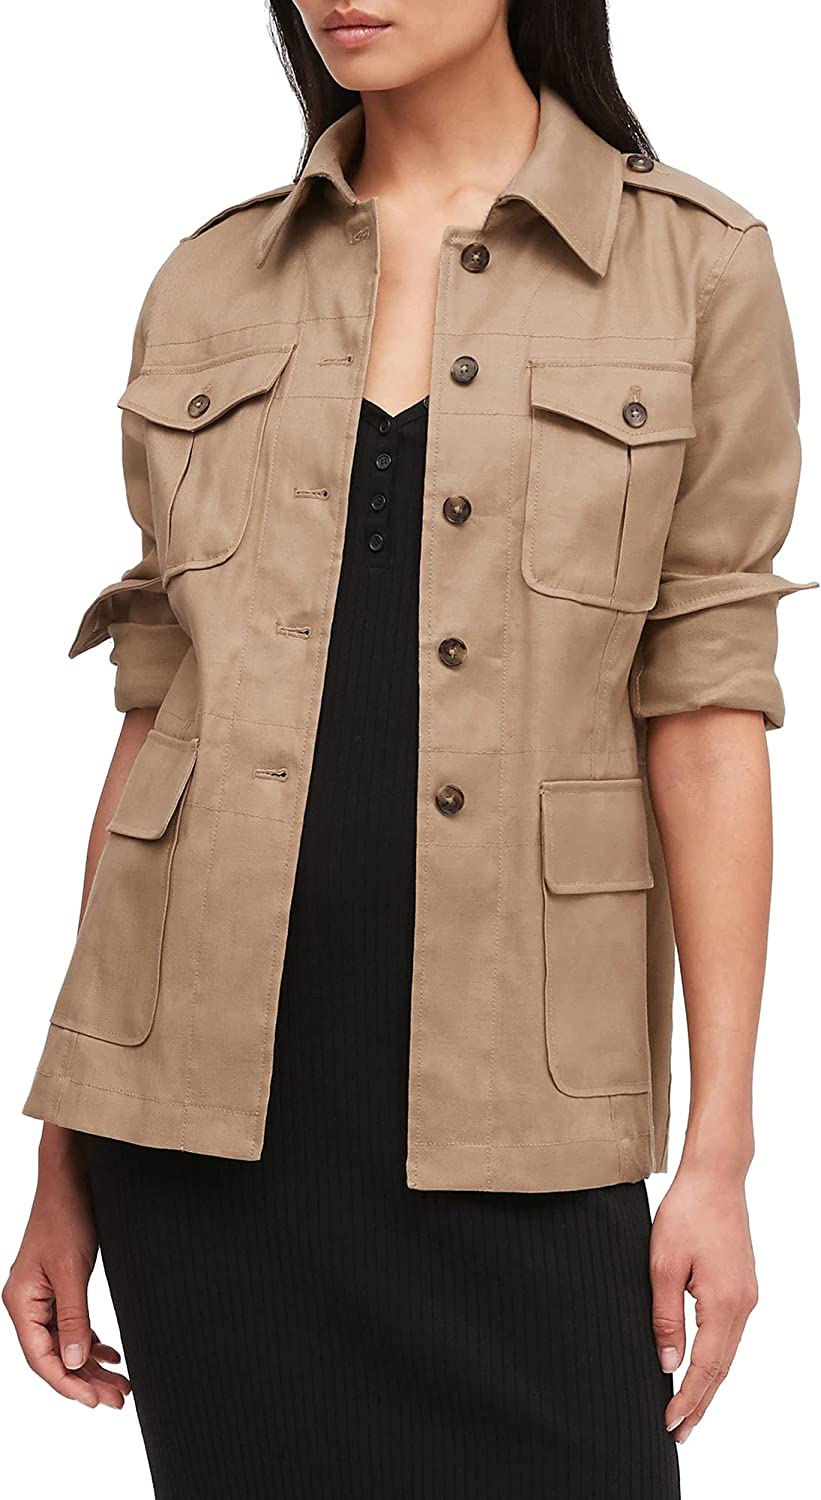 Women's Classic Casual Jacket Four Pocket Soft Shell Trench Coat Fashion Transitional Jacket